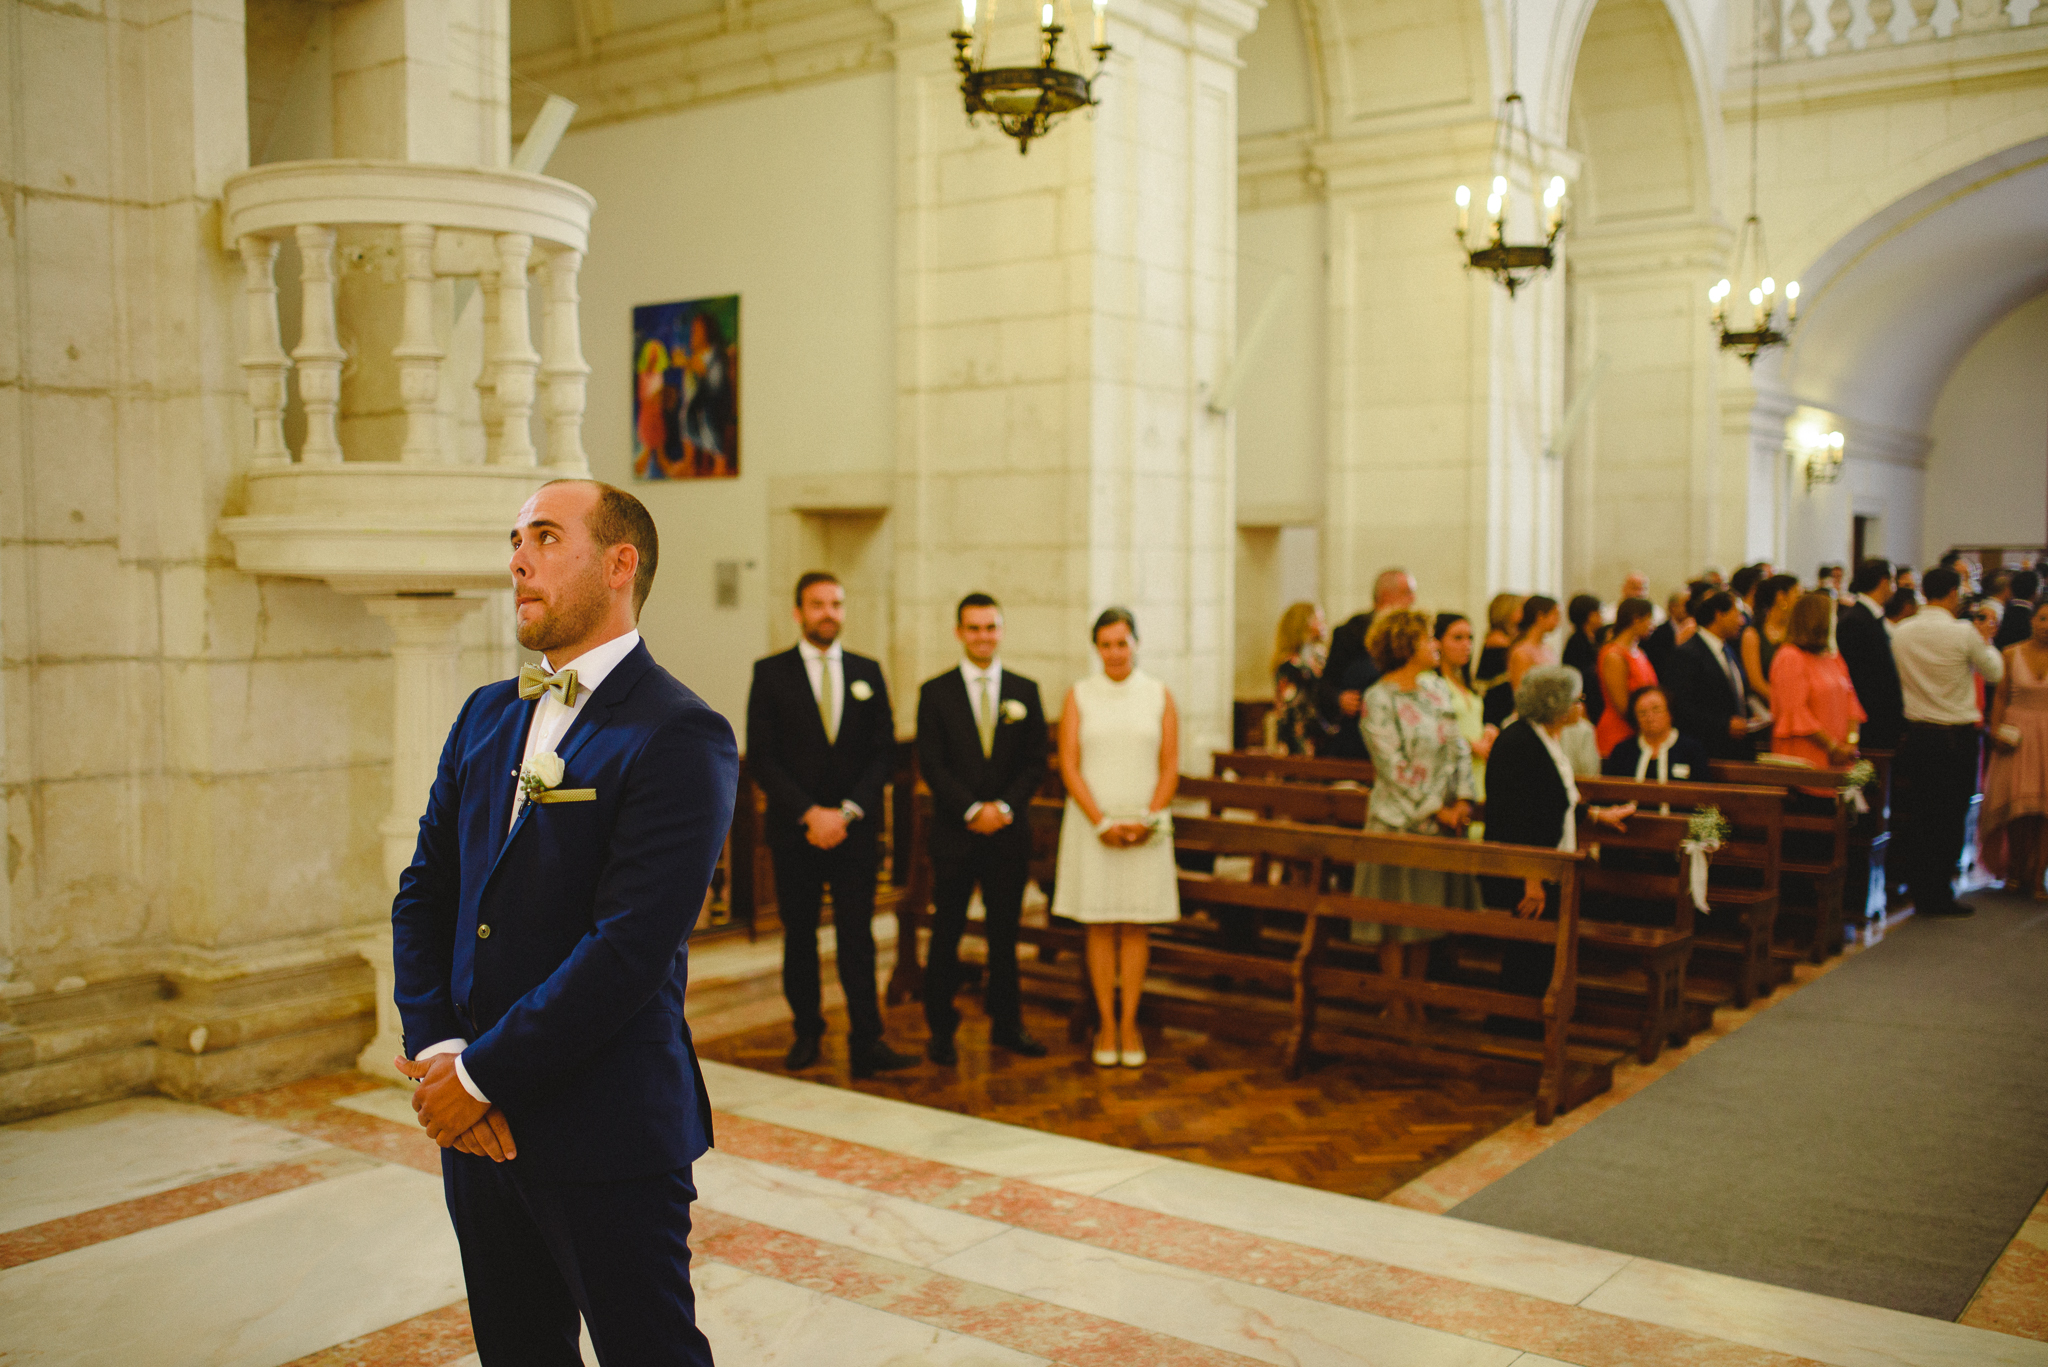 Groom waiting for bride while she walks down the aisle